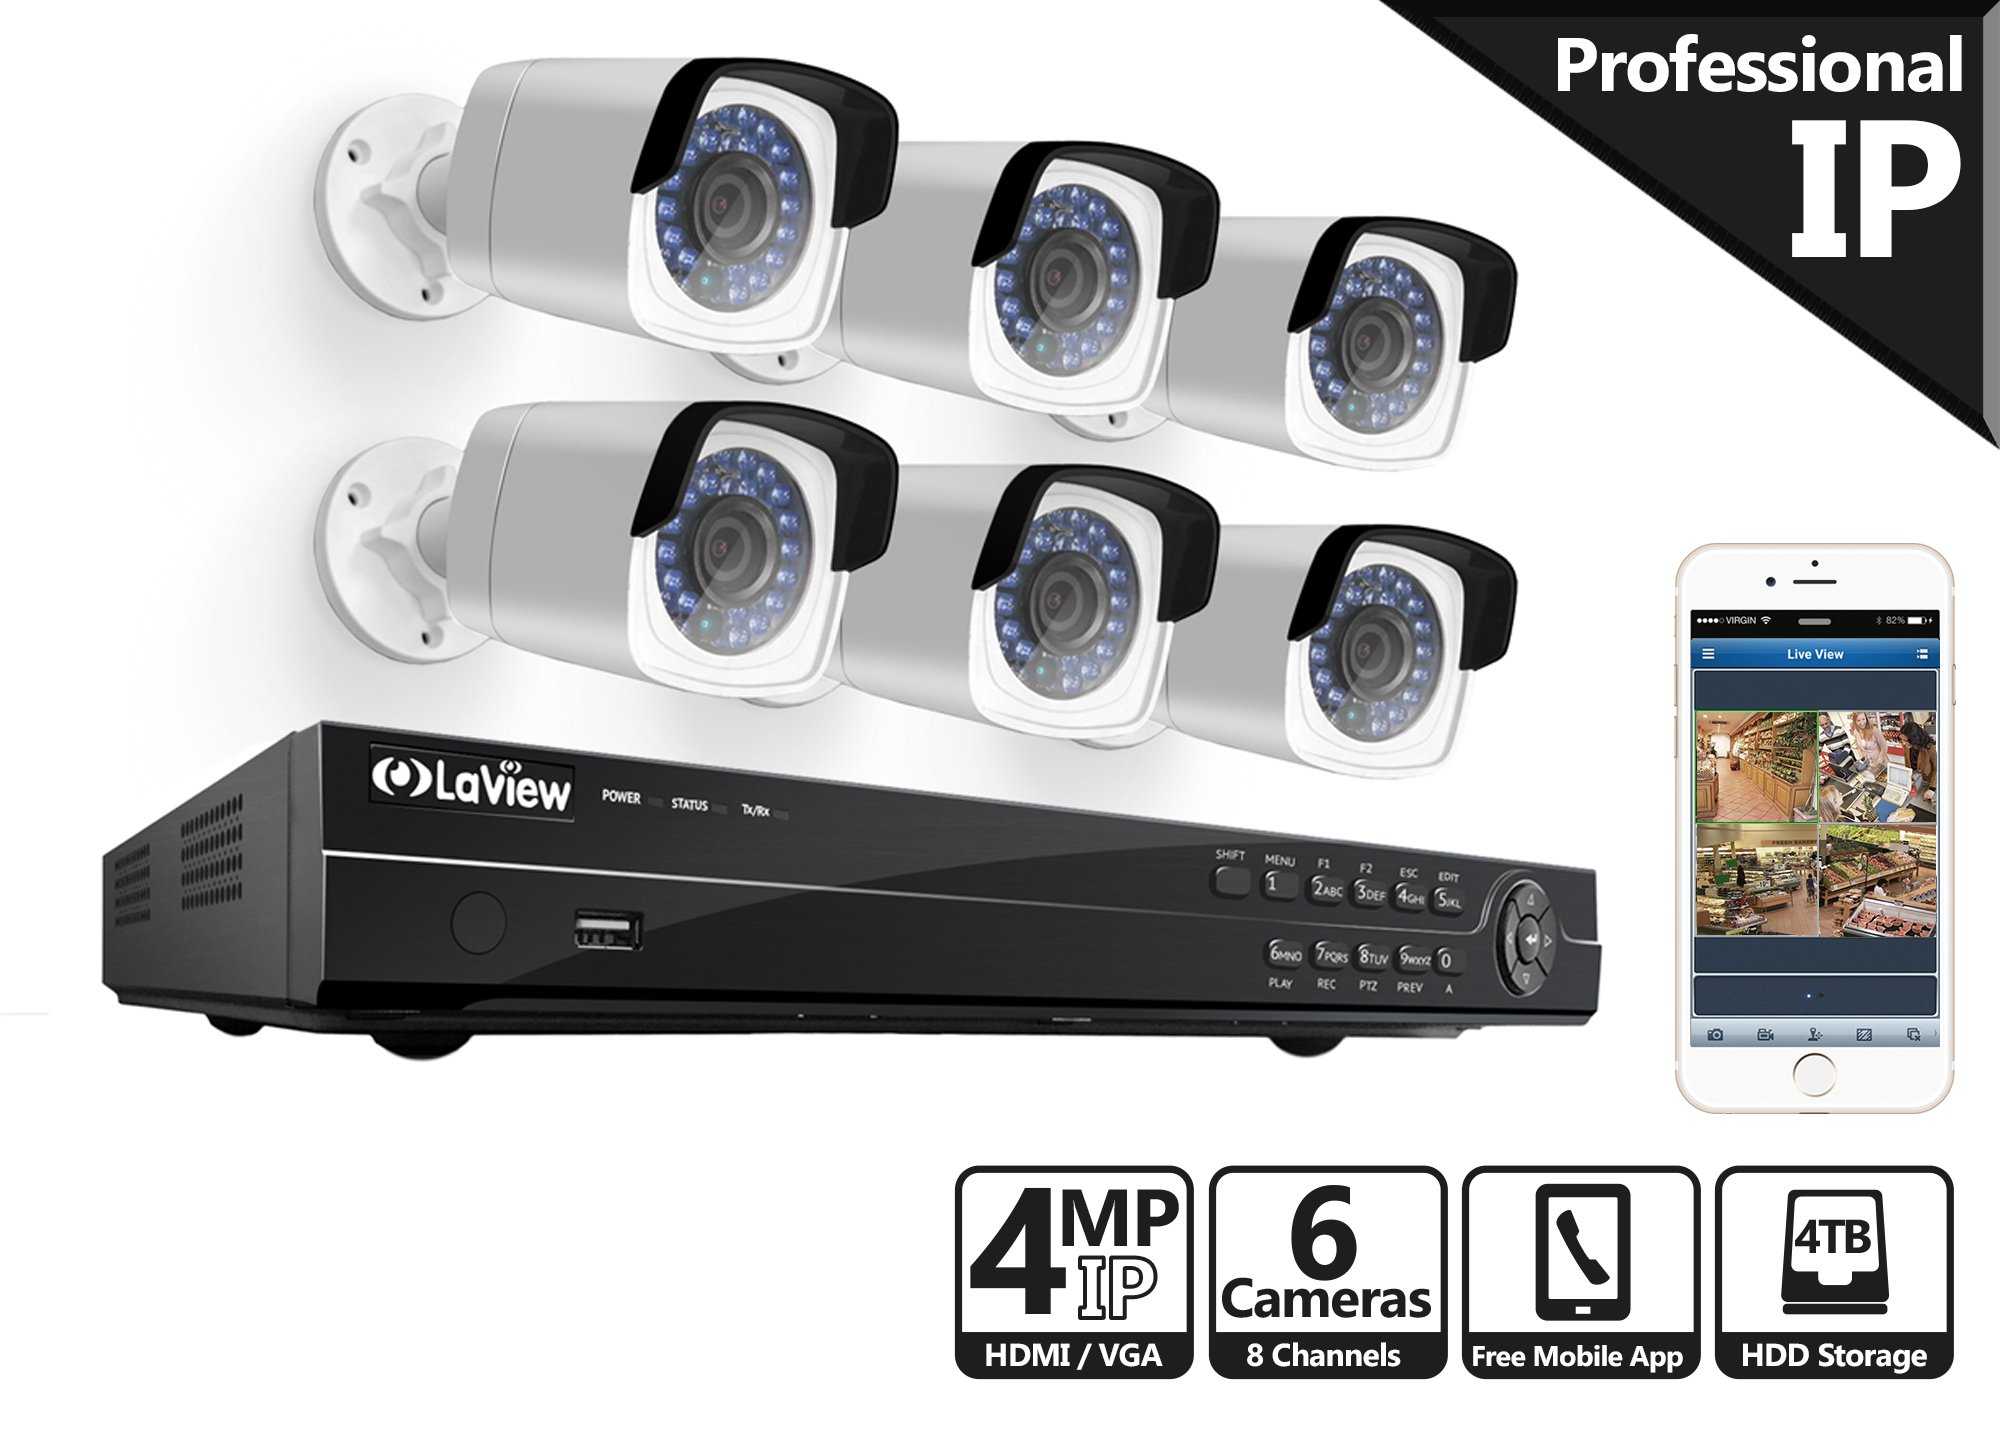 LaView 4-Megapixel (2688 x 1520) 8 CH PoE NVR Security Cameras System - 6 4MP Bullet IP Surveillance Cameras, 100ft Night Vision, Pre-Installed 4TB Hard Drive